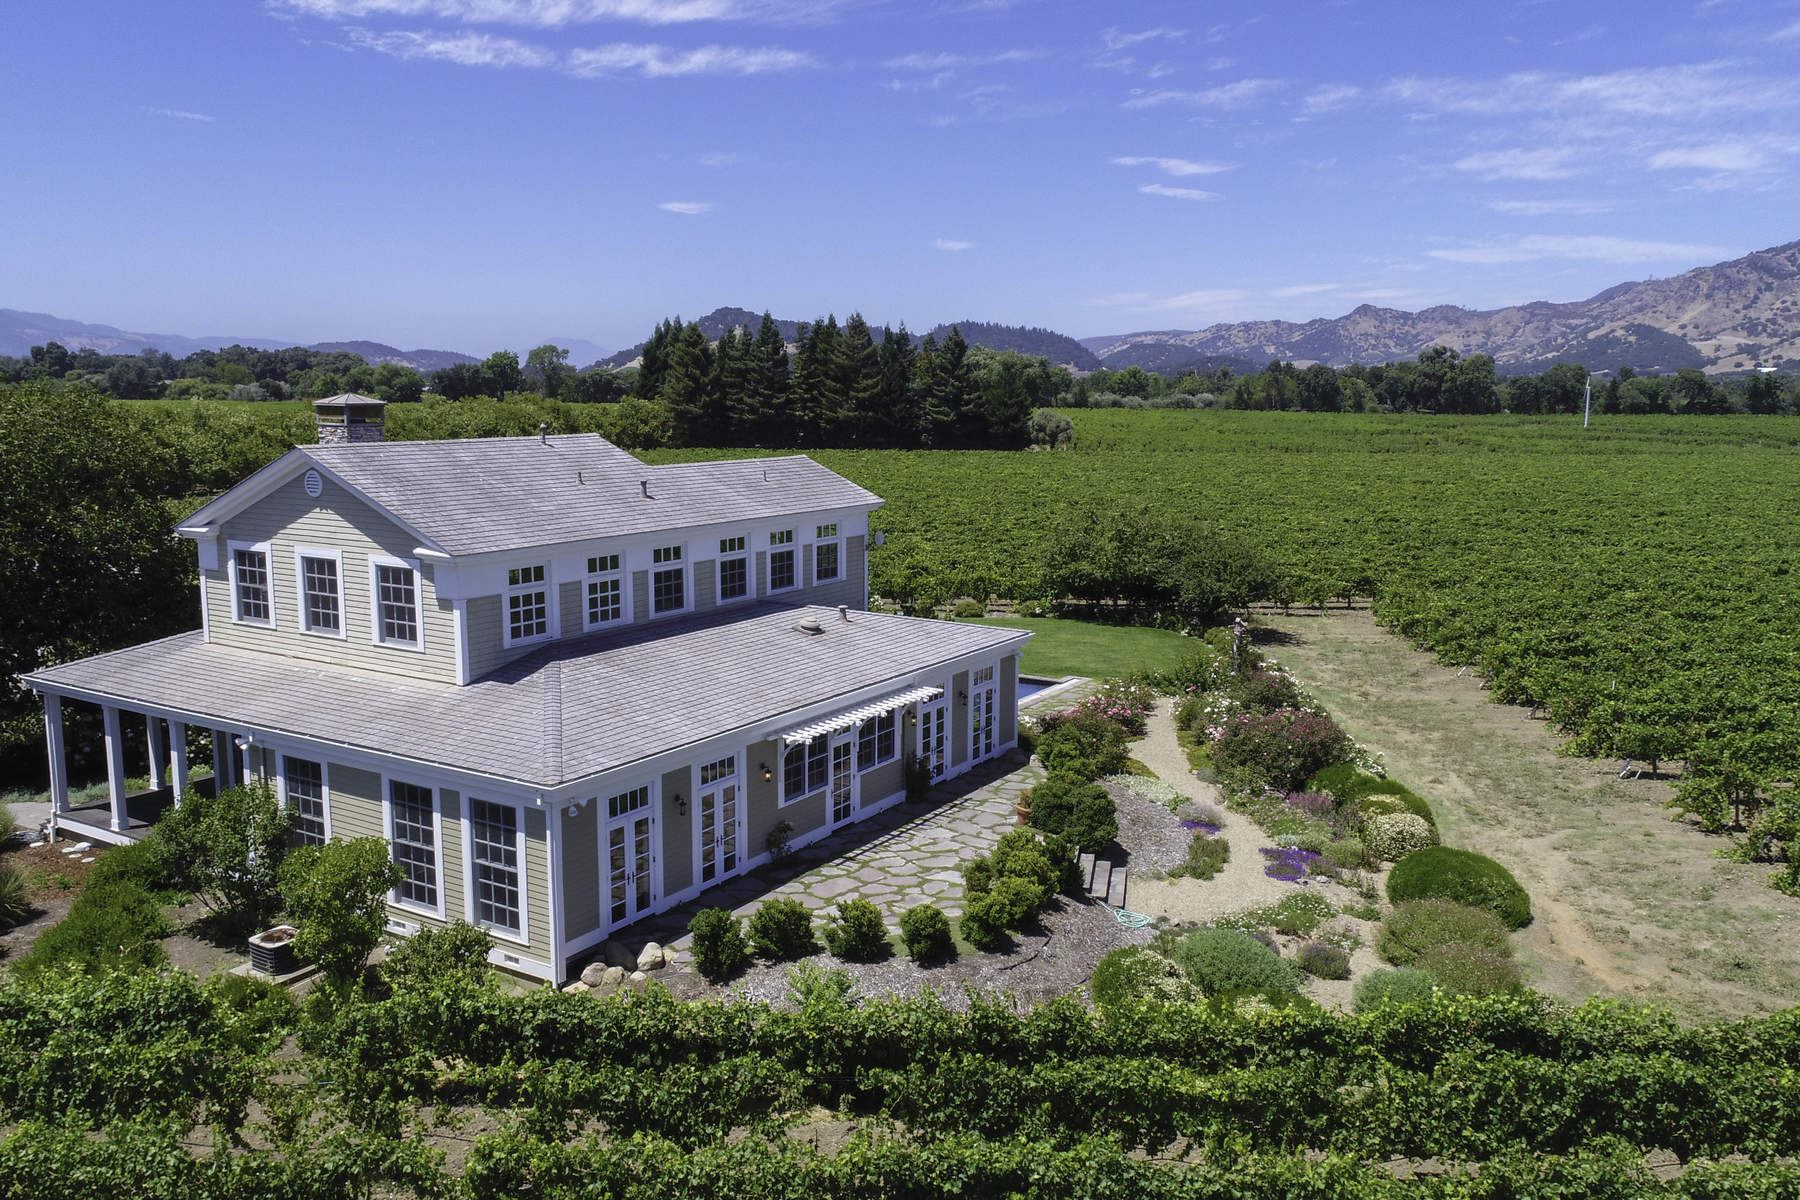 Casa Unifamiliar por un Venta en Napa Valley Vineyard Estate 5224 Big Ranch Rd, Napa, California, 94558 Estados Unidos